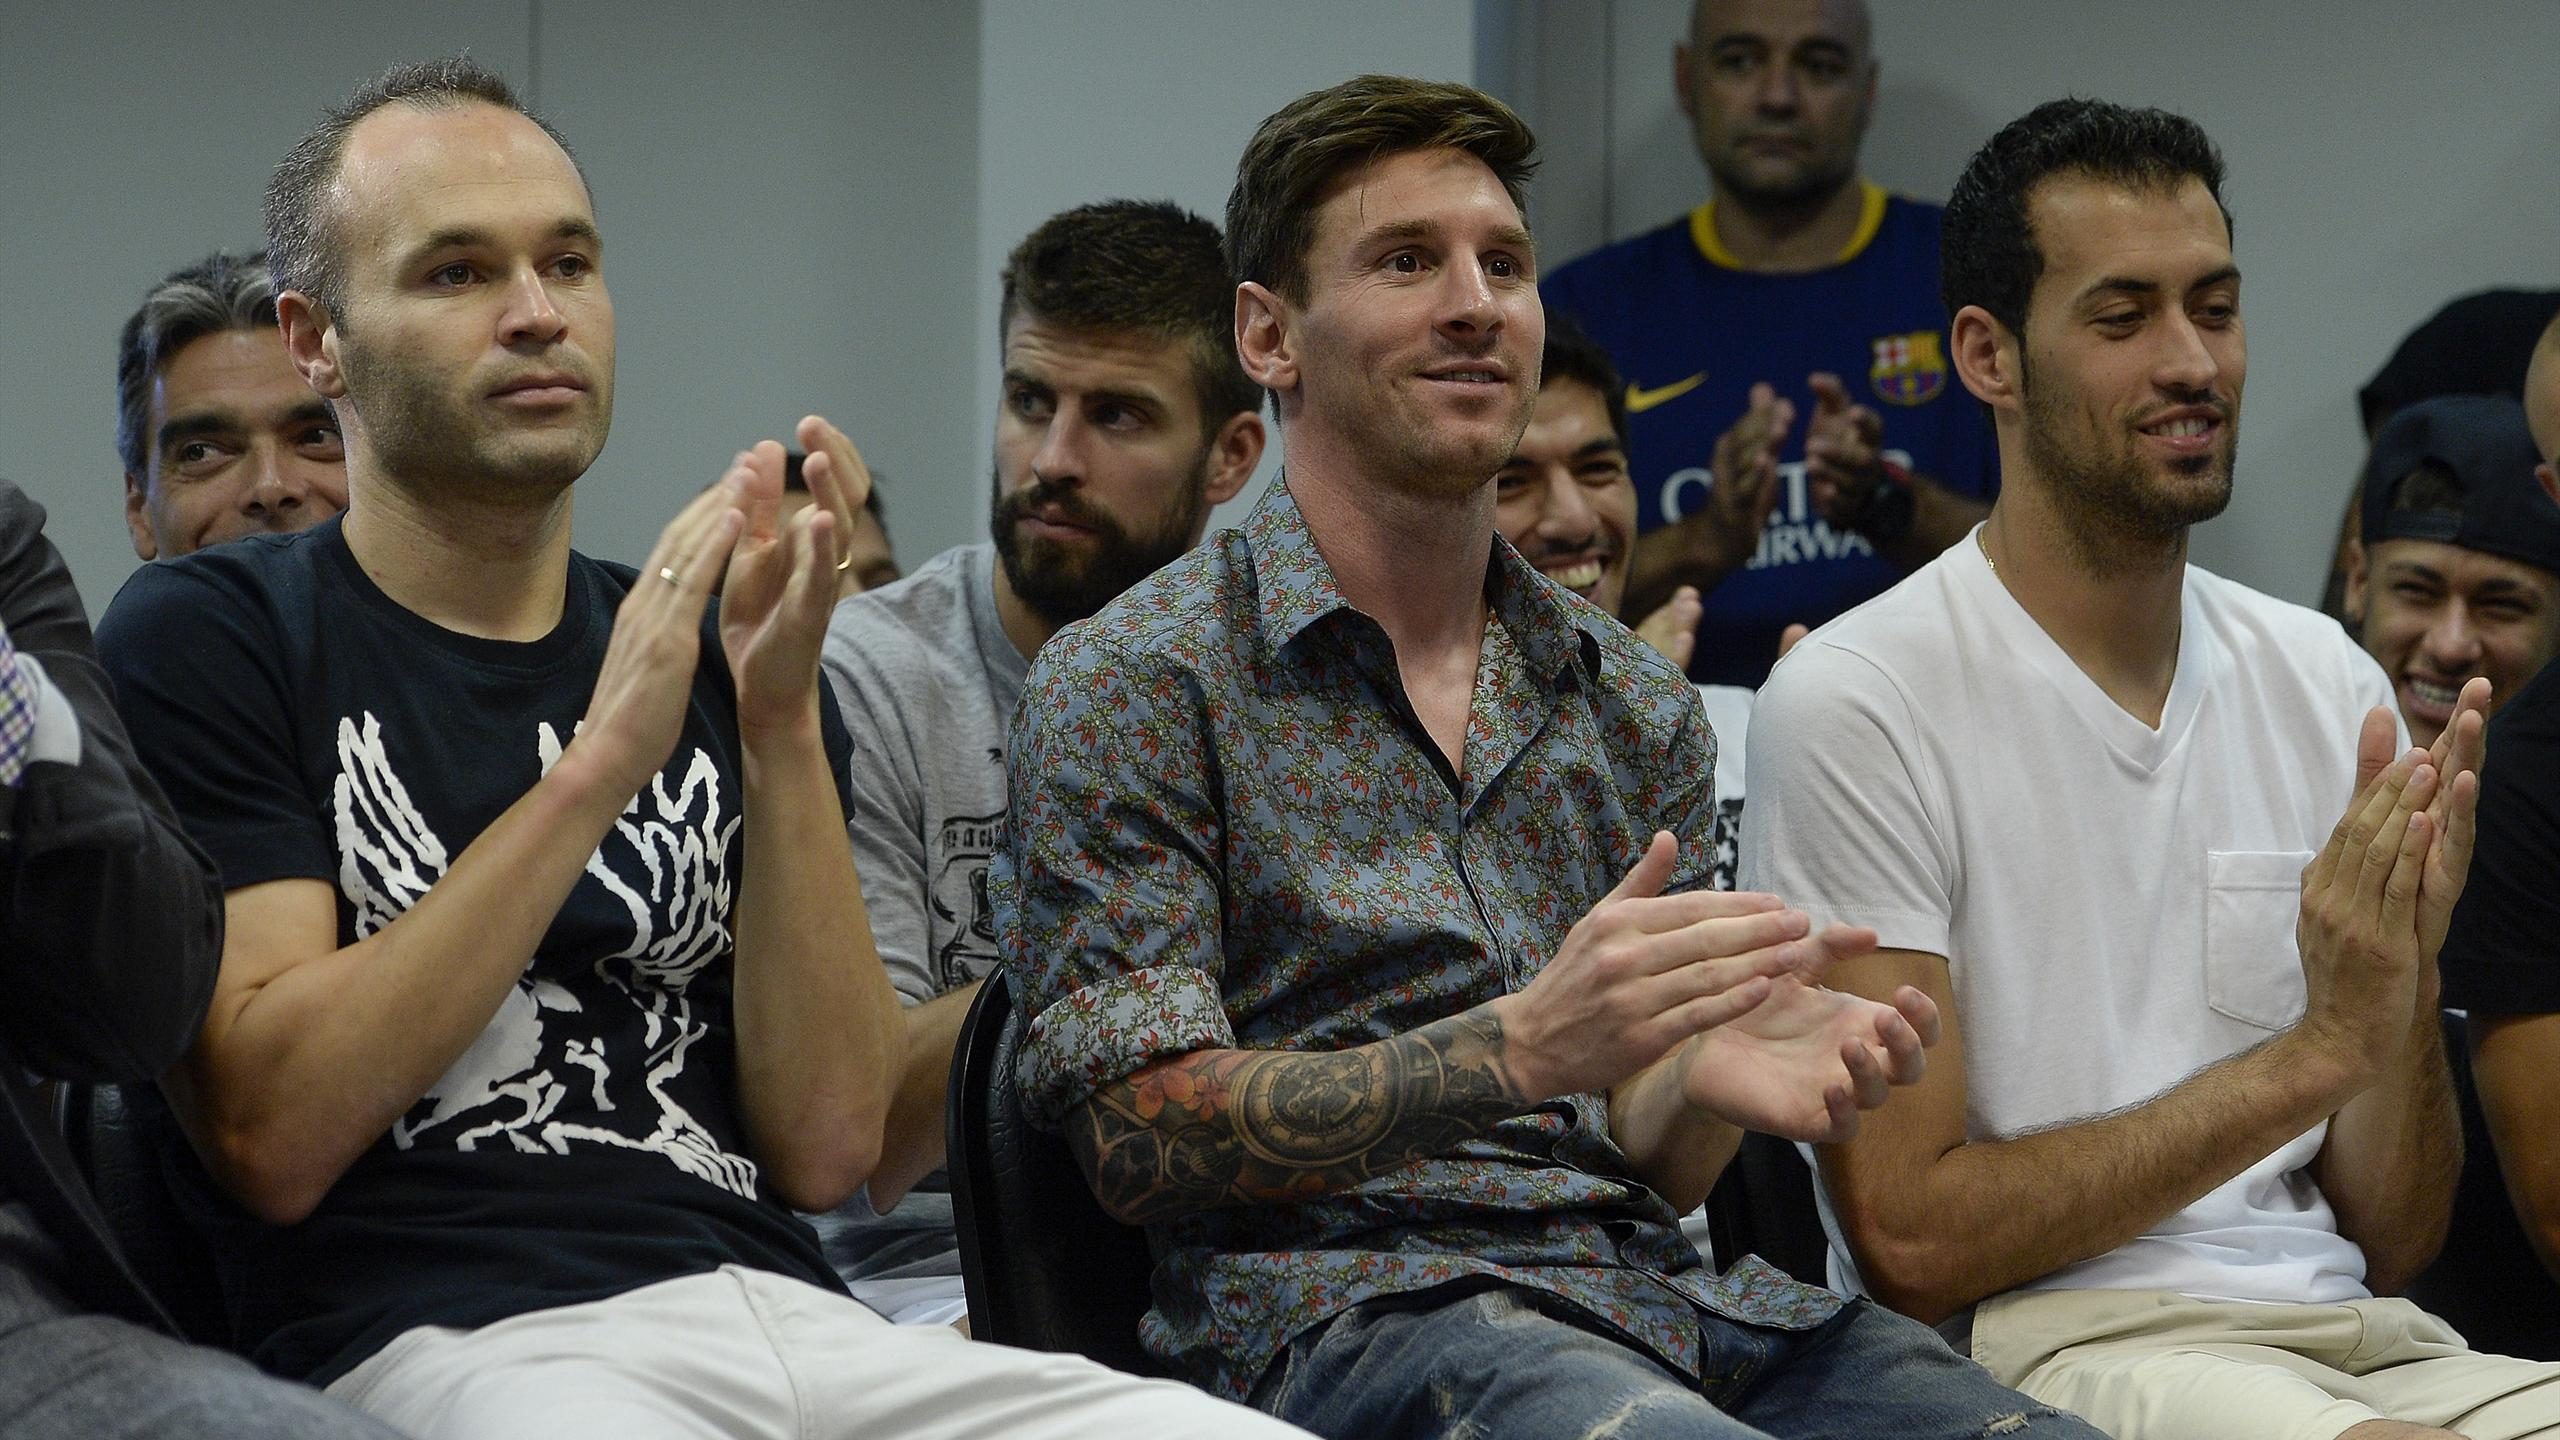 Barcelona's Argentinian forward Lionel Messi (C), Barcelona's midfielder Andres Iniesta and Barcelona's midfielder Sergio Busquets (R) clap during a farewell press conference for Barcelona's former forward Pedro